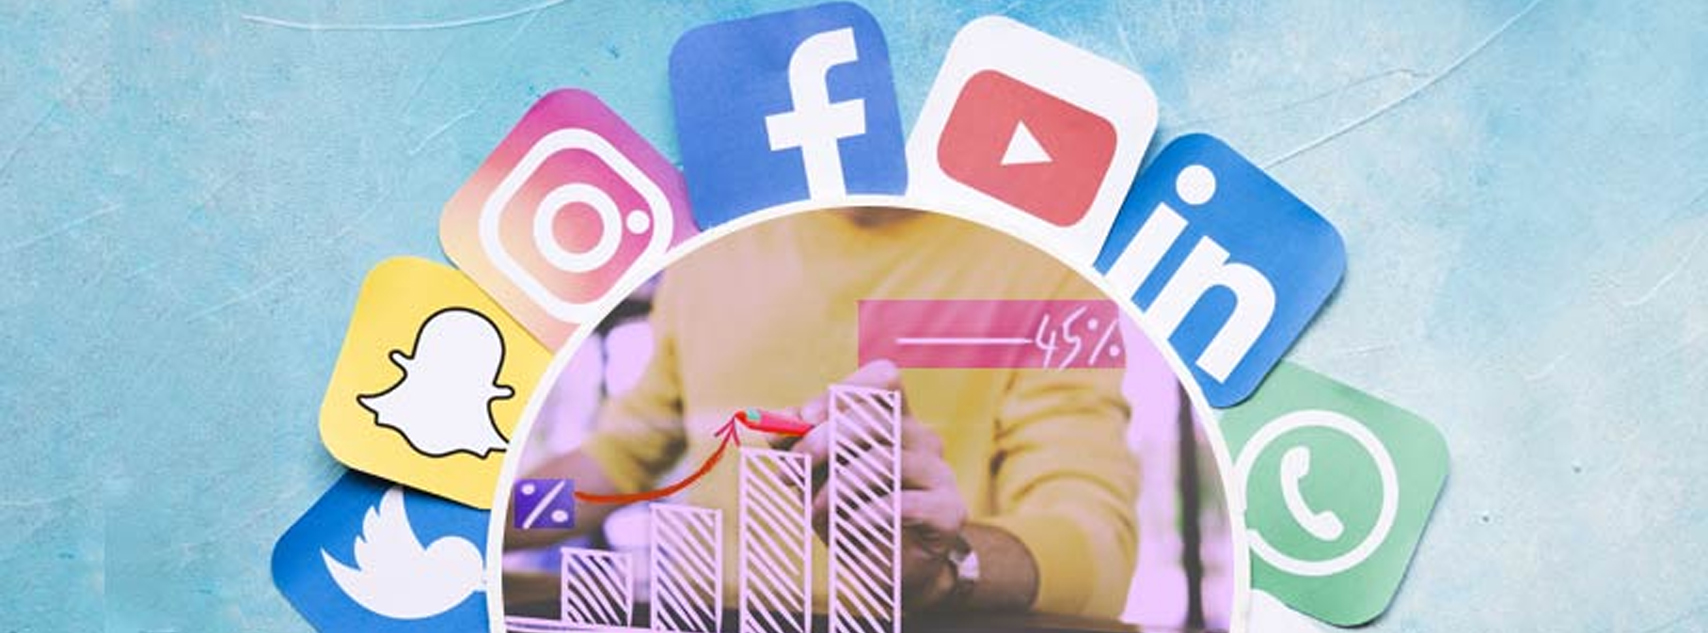 Social Media Marketing – Can it Make Your Company More Visible?